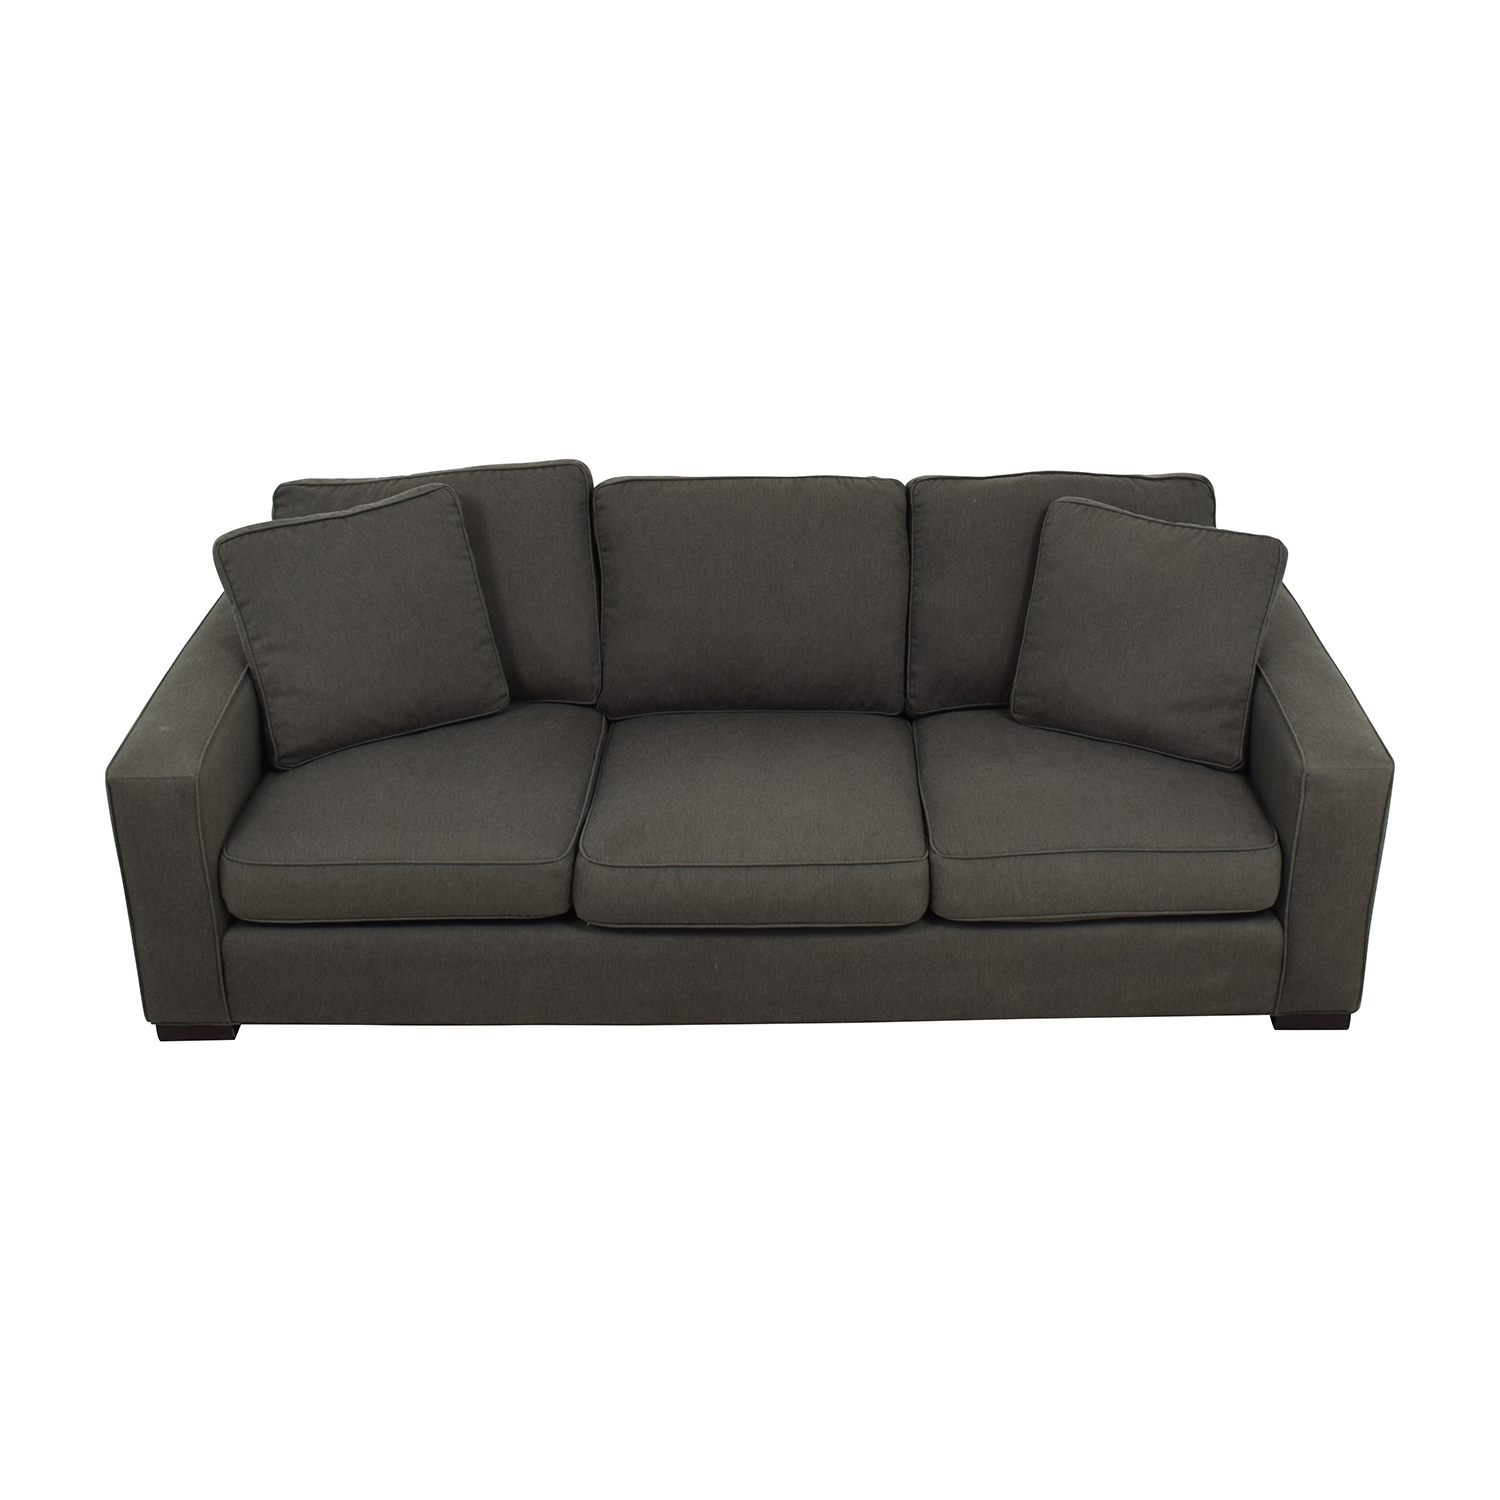 Elegant ... Room U0026 Board Room U0026 Board Metro Sofa In Charcoal ...